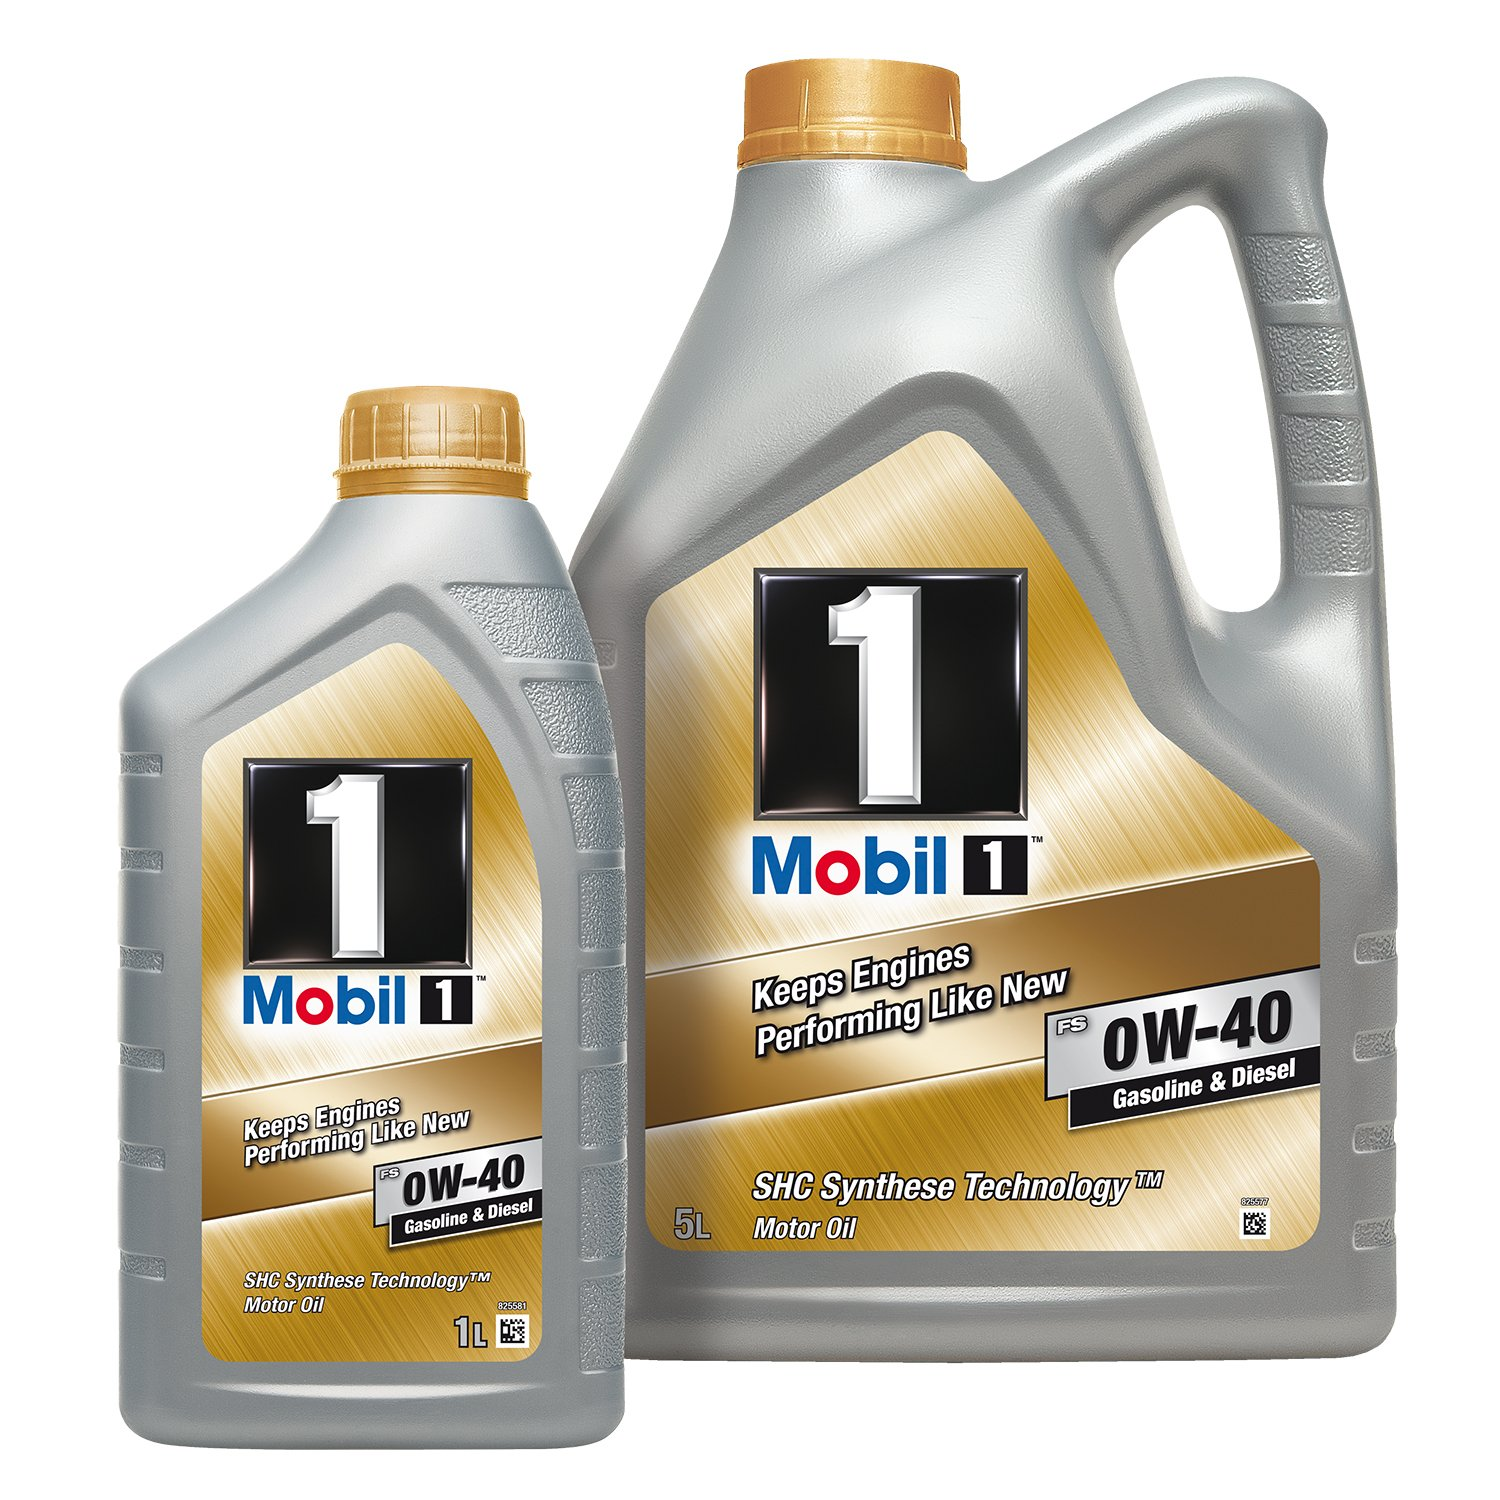 Mobil 1 FS 0W40 153672 Motorenö l Synthetic, Gold, 1L EXXONMOBIL LUBRICANTS & SPECIALTIES EUROPE A DIVISION OF EXXONMOBIL PETROLEUM & CHEMICAL BVBA (EMPC)